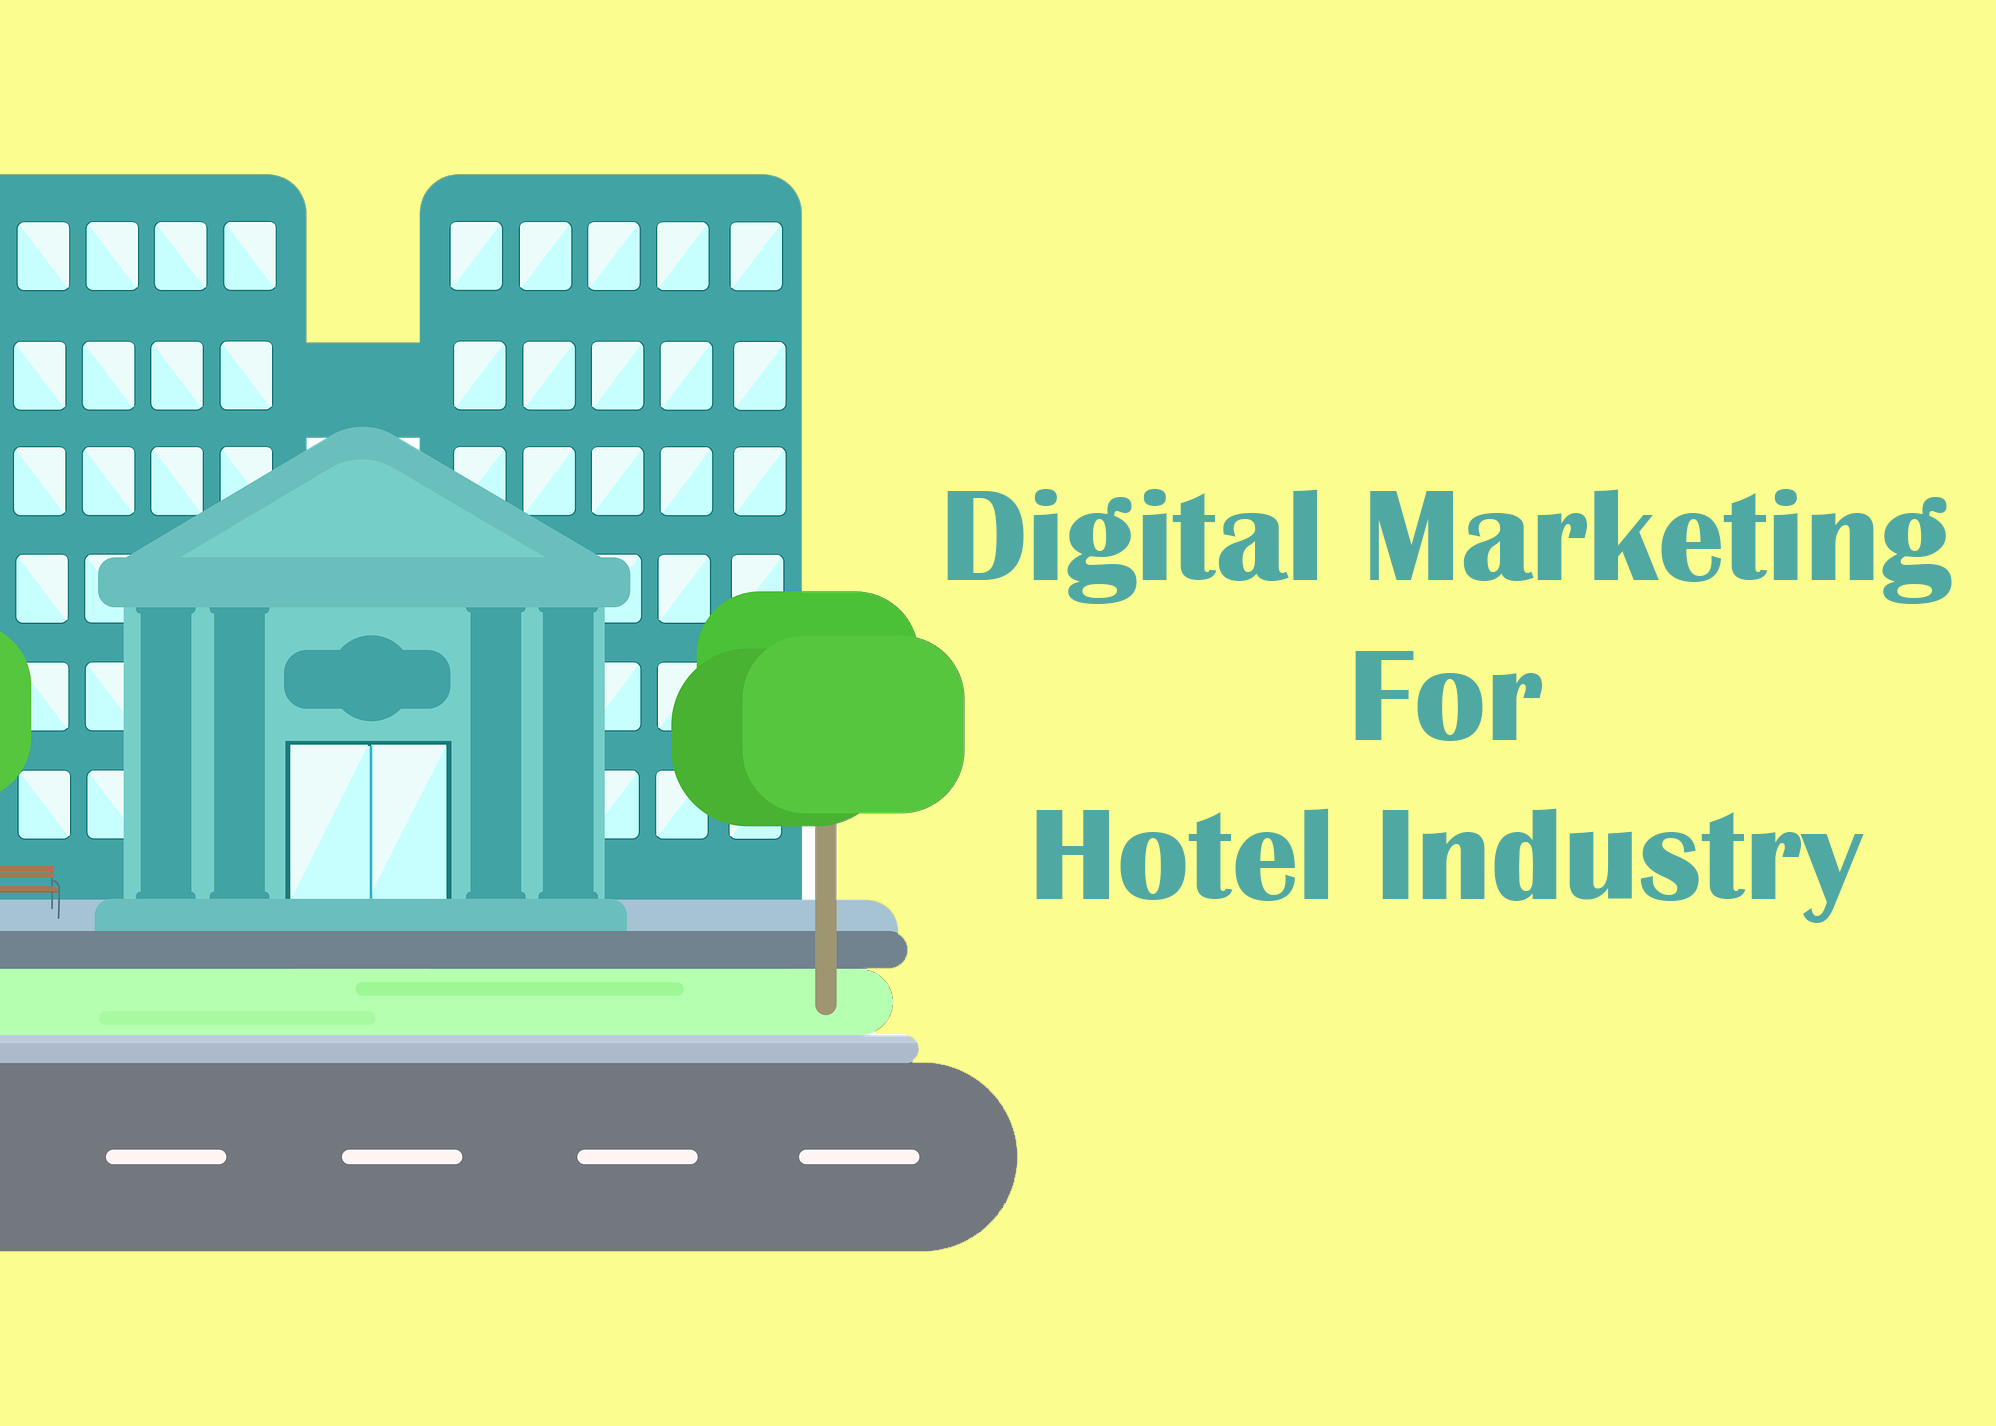 Digital Marketing For Hotel Industry: A Complete Guide